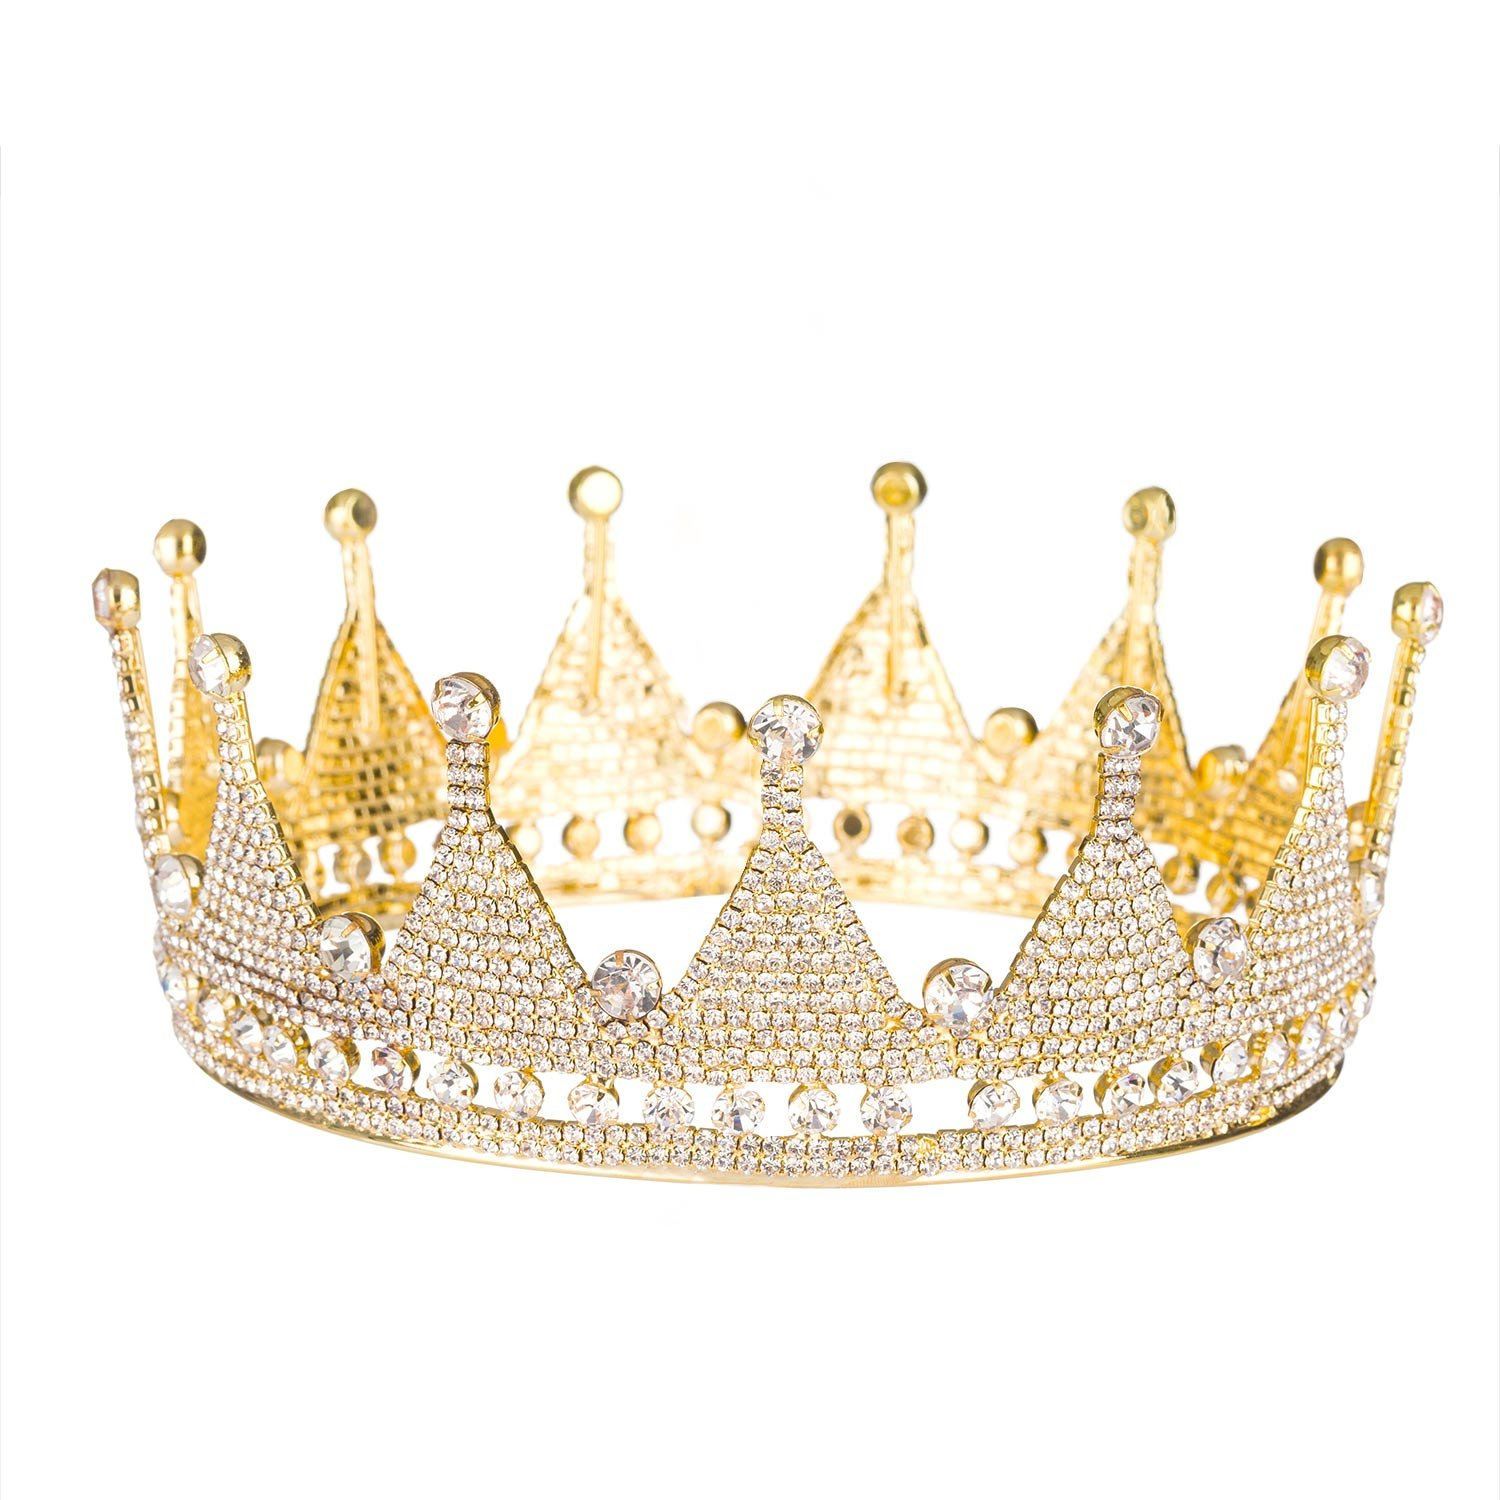 Royal King Crowns Tiaras High 2.36''